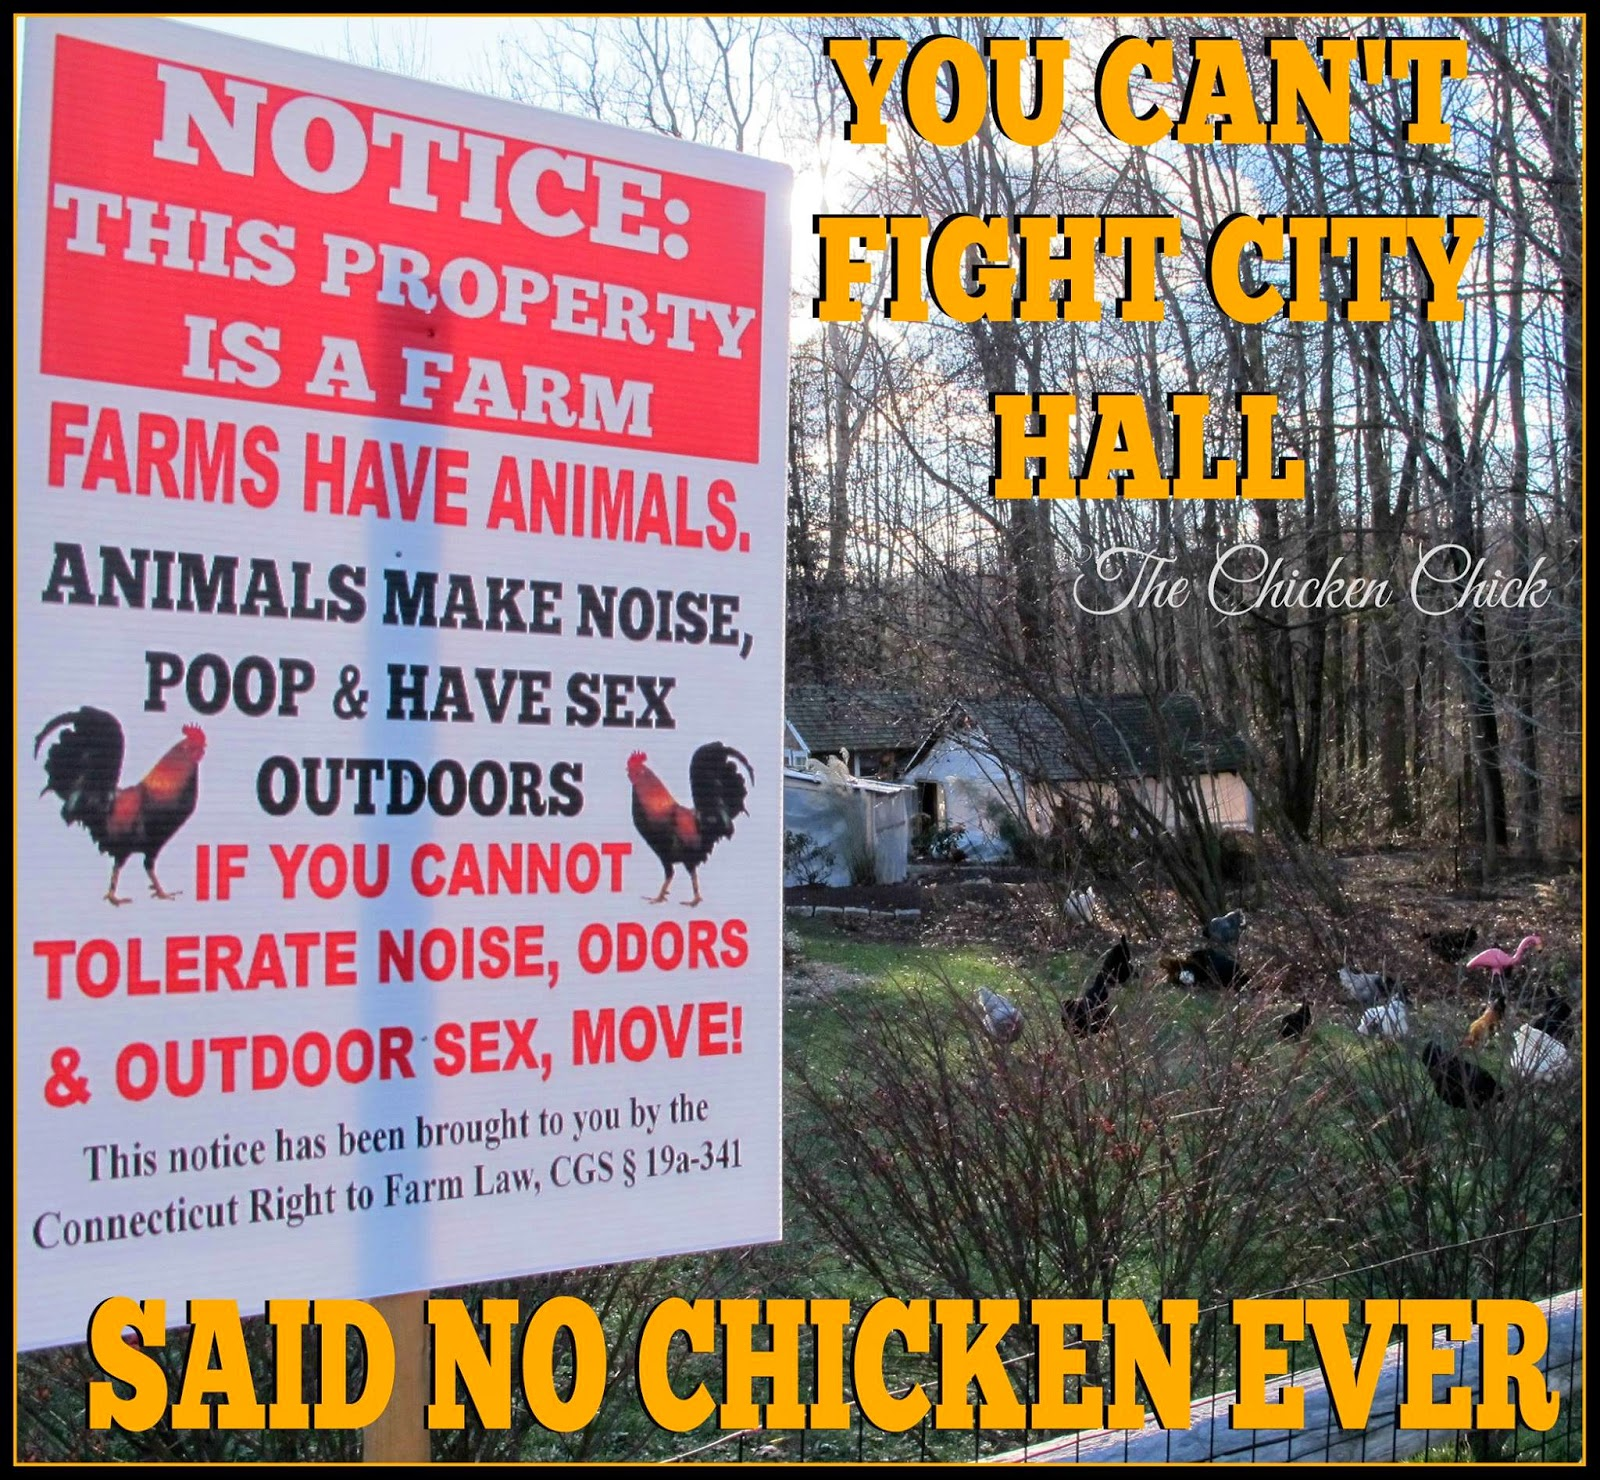 You can't fight City Hall...Said No Chicken EVER.